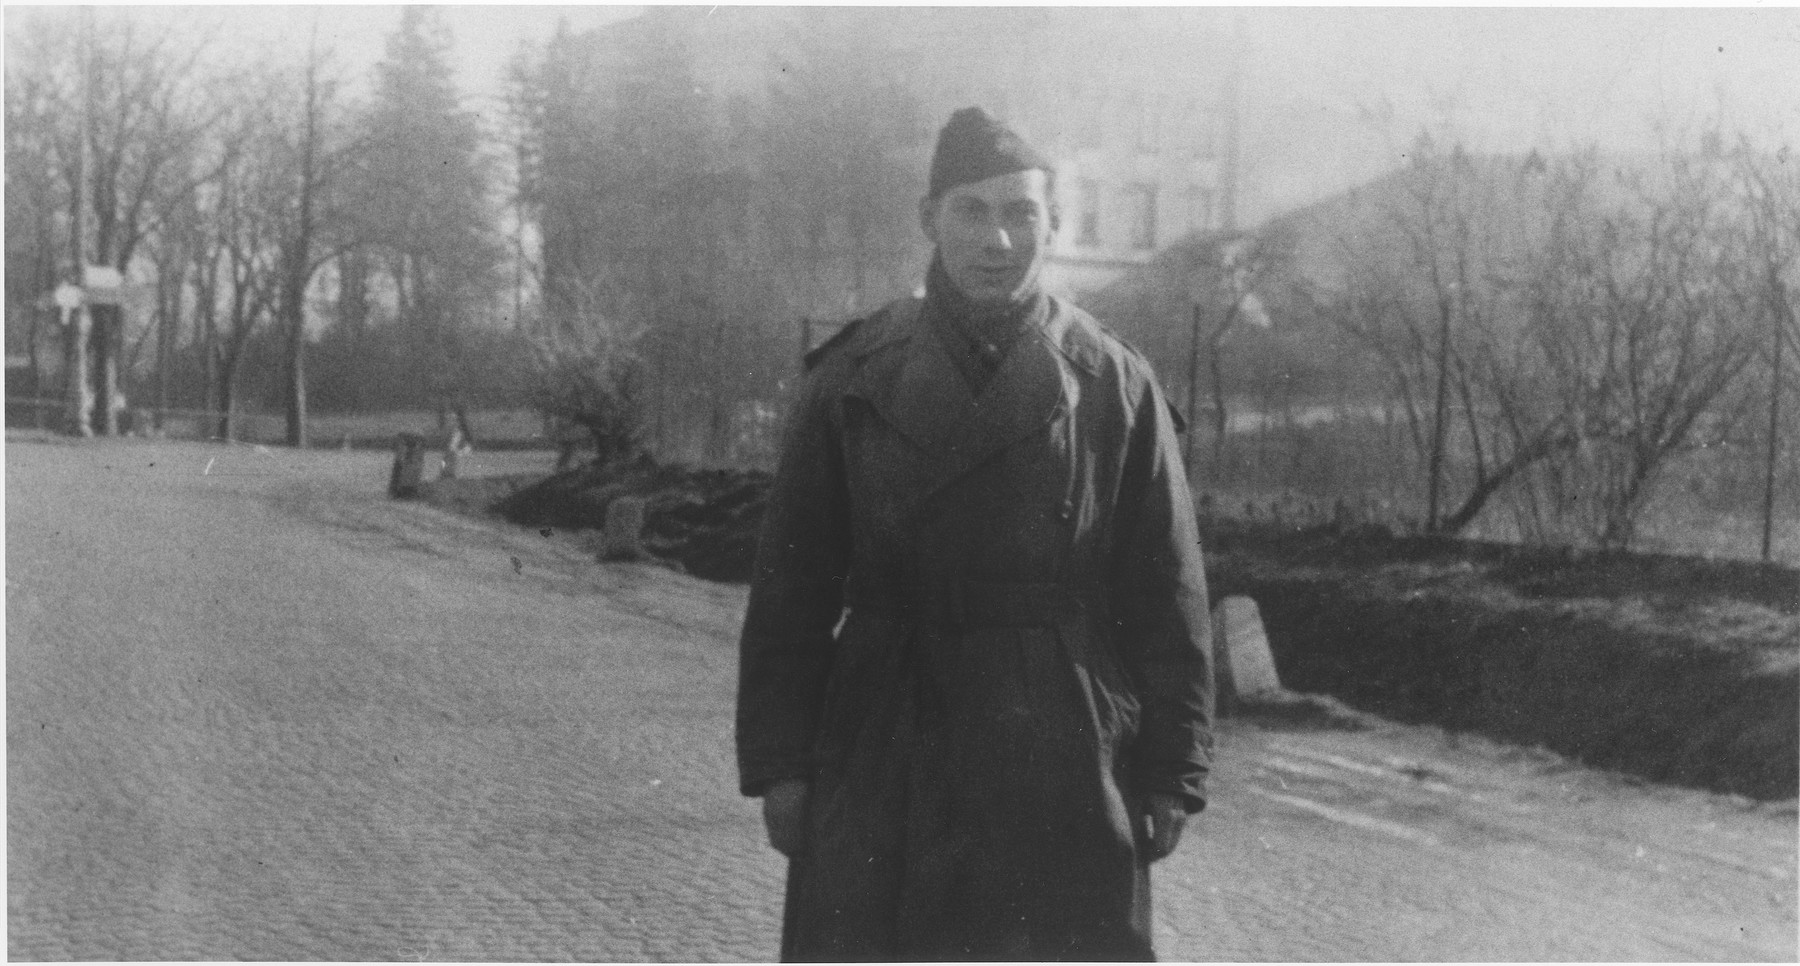 An American soldier [possibly Ltc. Nordlicht, the camp commander] poses on a street in the Enns displaced persons camp.